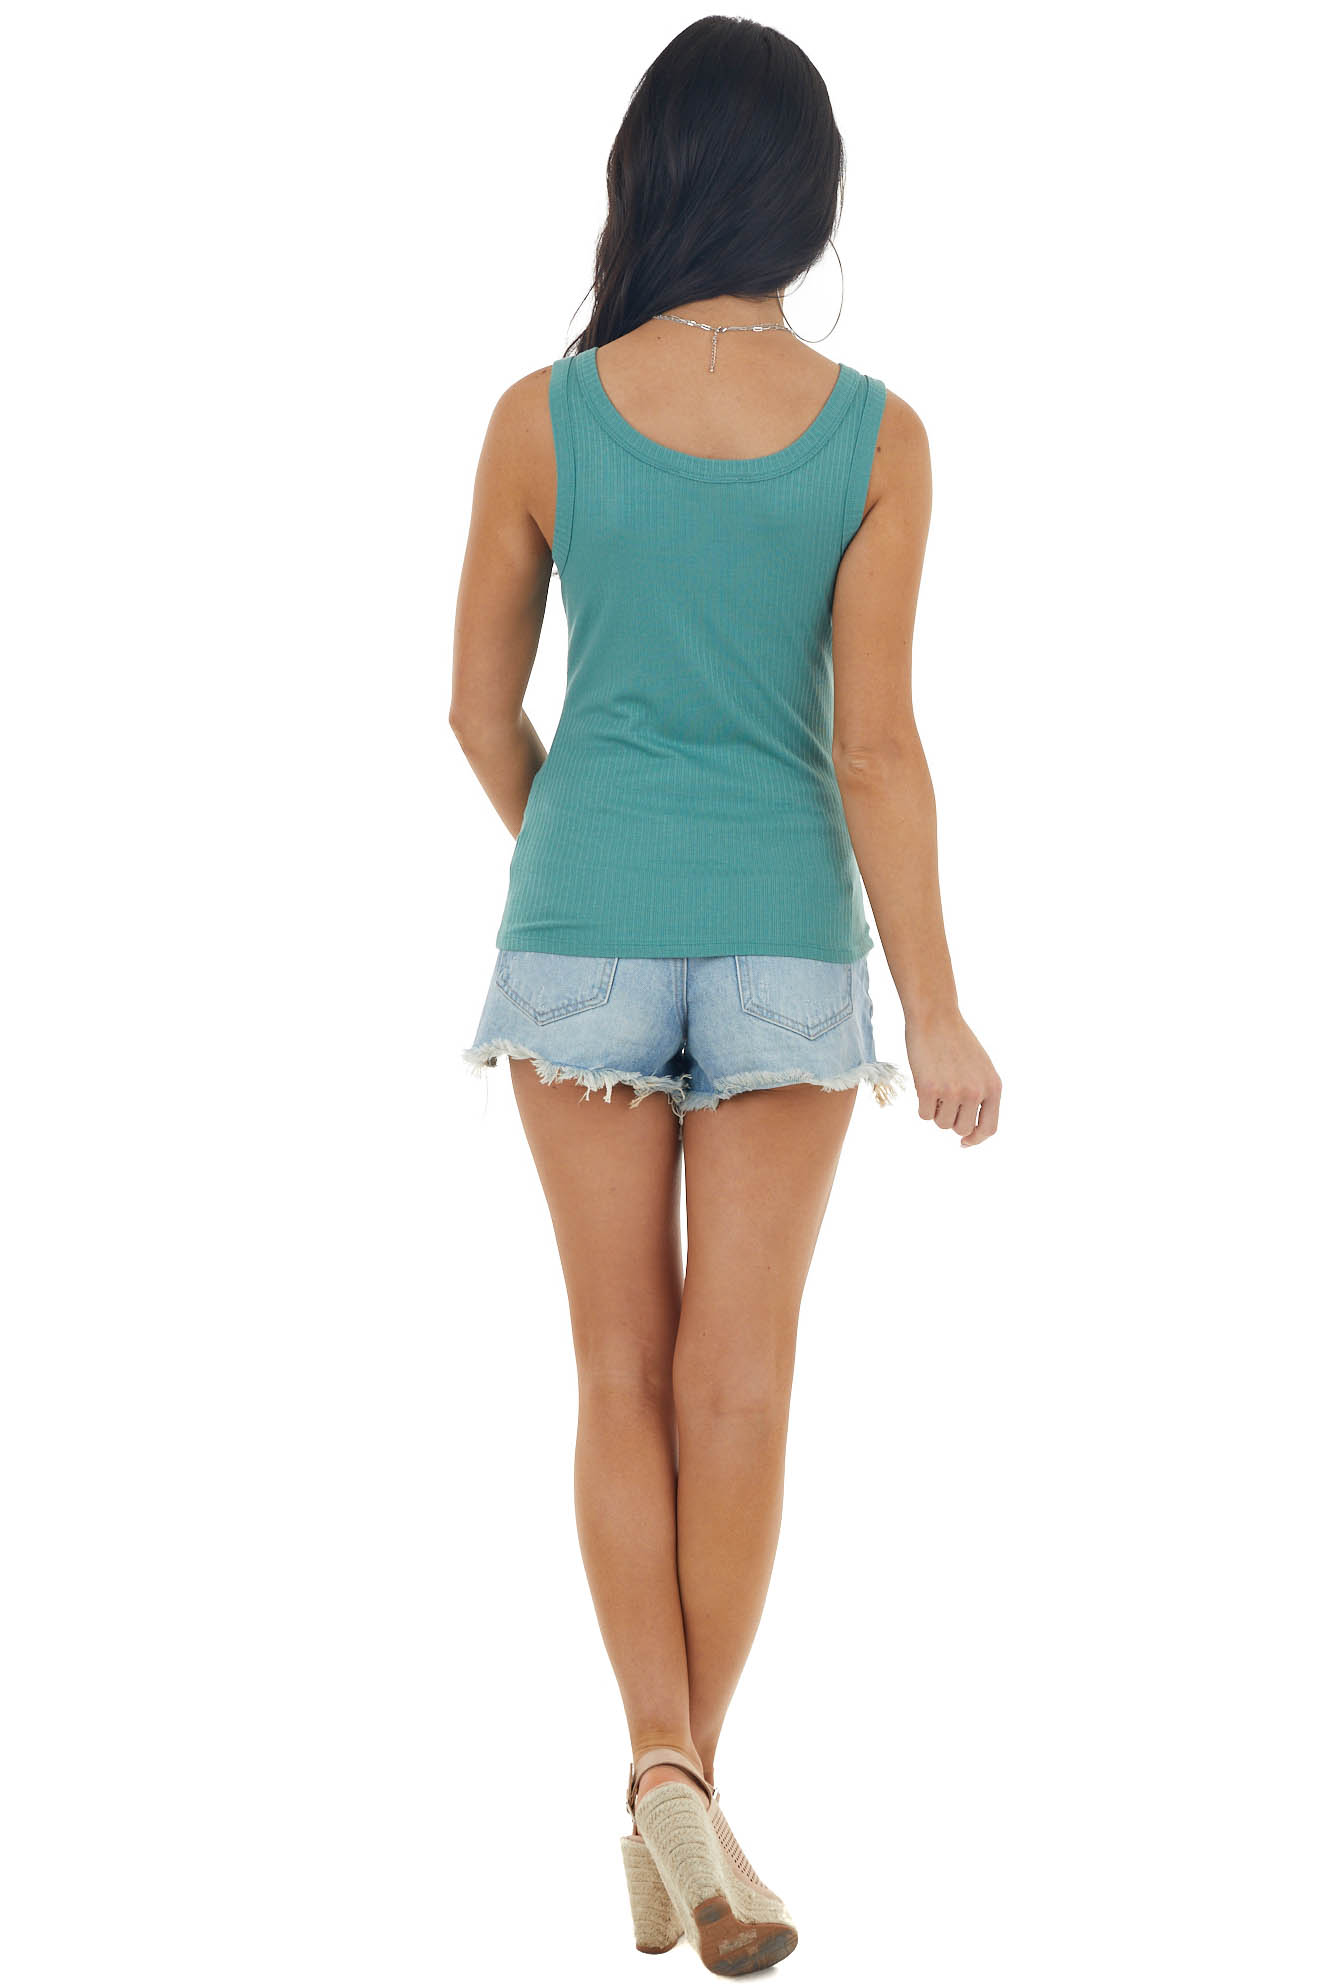 Juniper Stretchy Ribbed Knit Tank Top with Scoop Neck